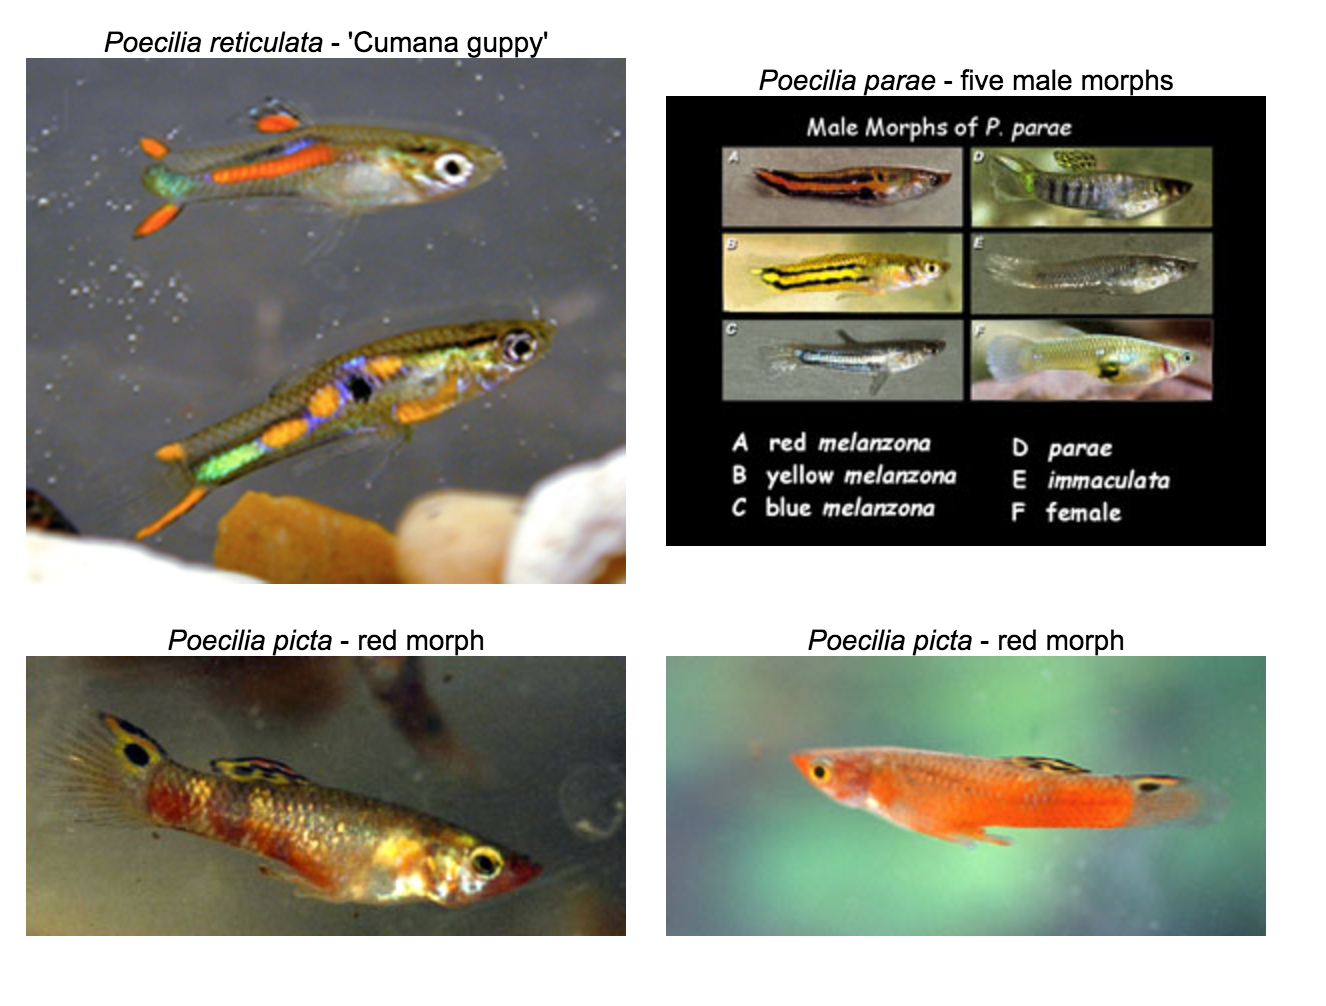 Sexual selection in guppies